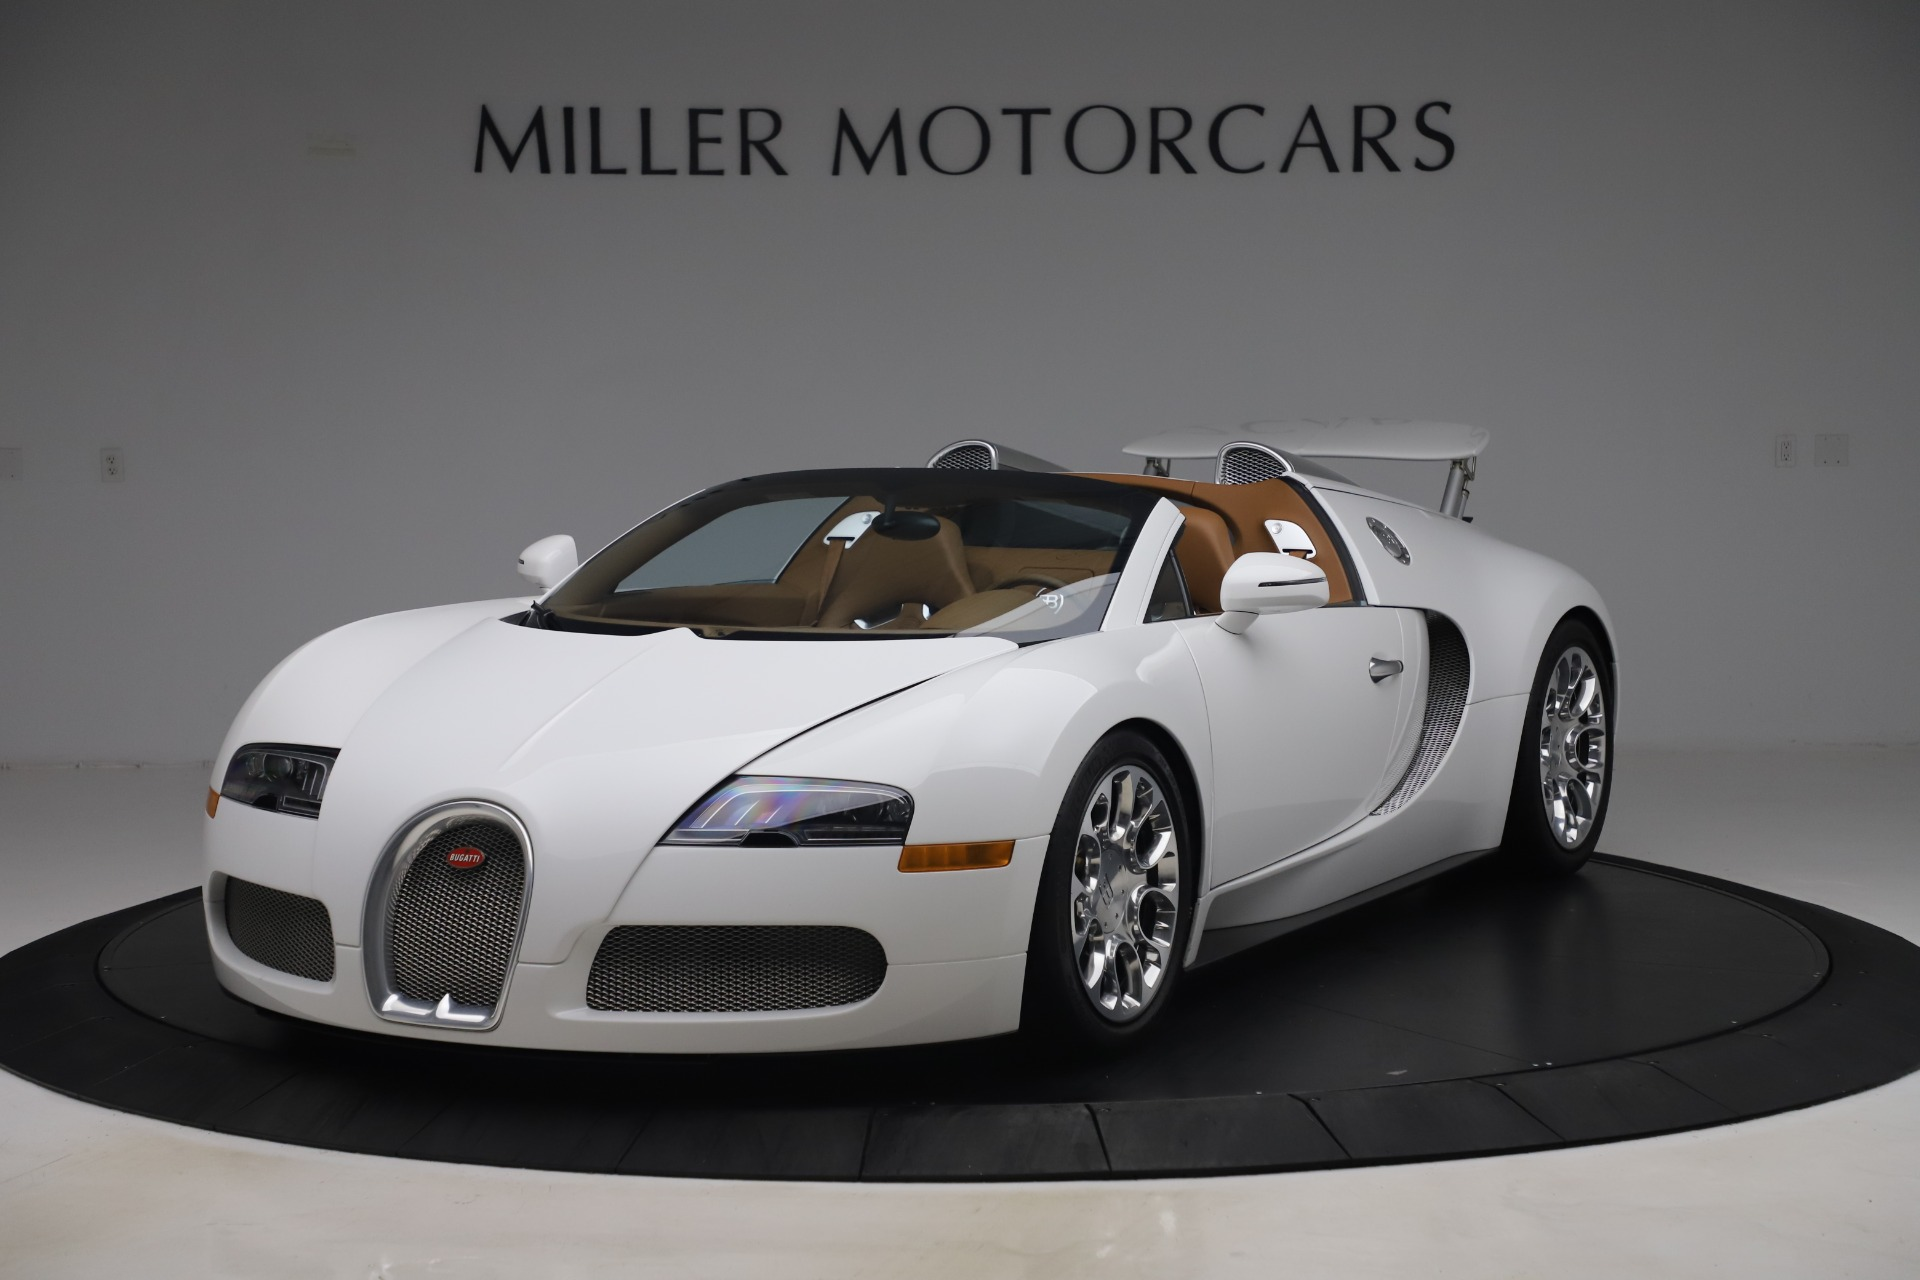 Used 2011 Bugatti Veyron 16.4 Grand Sport for sale Call for price at Rolls-Royce Motor Cars Greenwich in Greenwich CT 06830 1